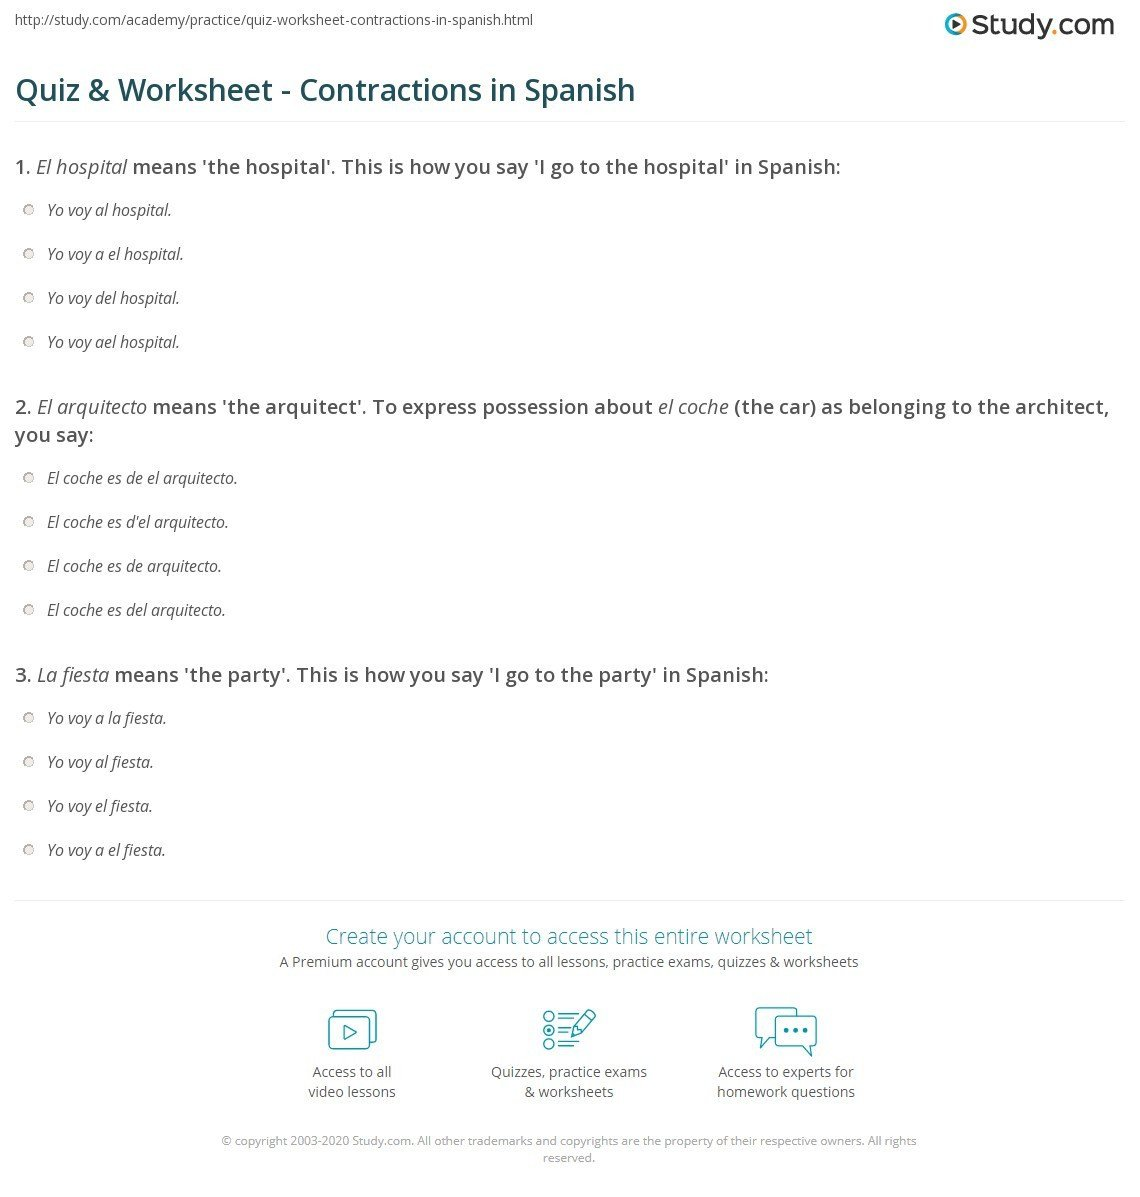 Spanish Contractions Worksheet Spanish Contractions Worksheet